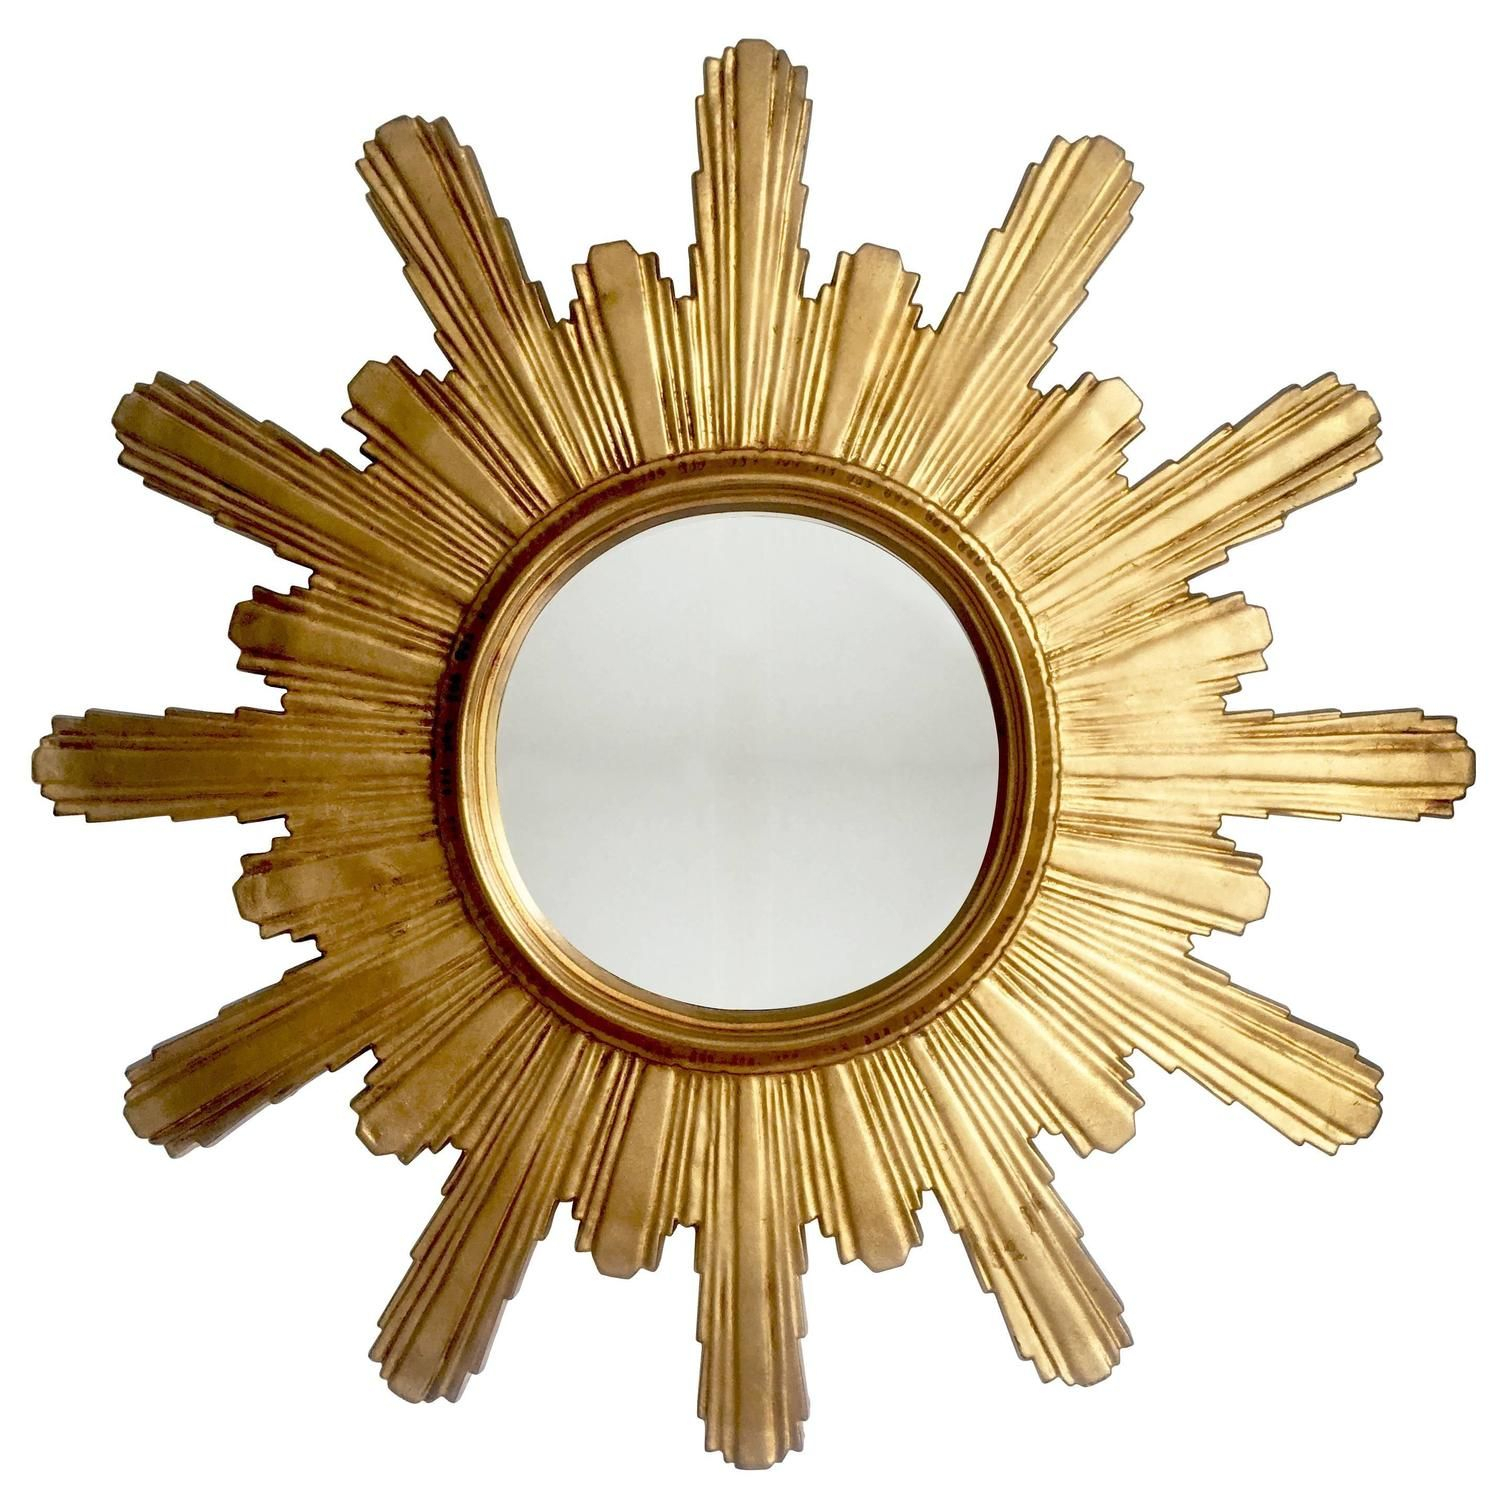 Extra Large Carved Wooden Brutalist Sunburst Or Starburst Pertaining To Birksgate Sunburst Accent Mirrors (Image 7 of 20)